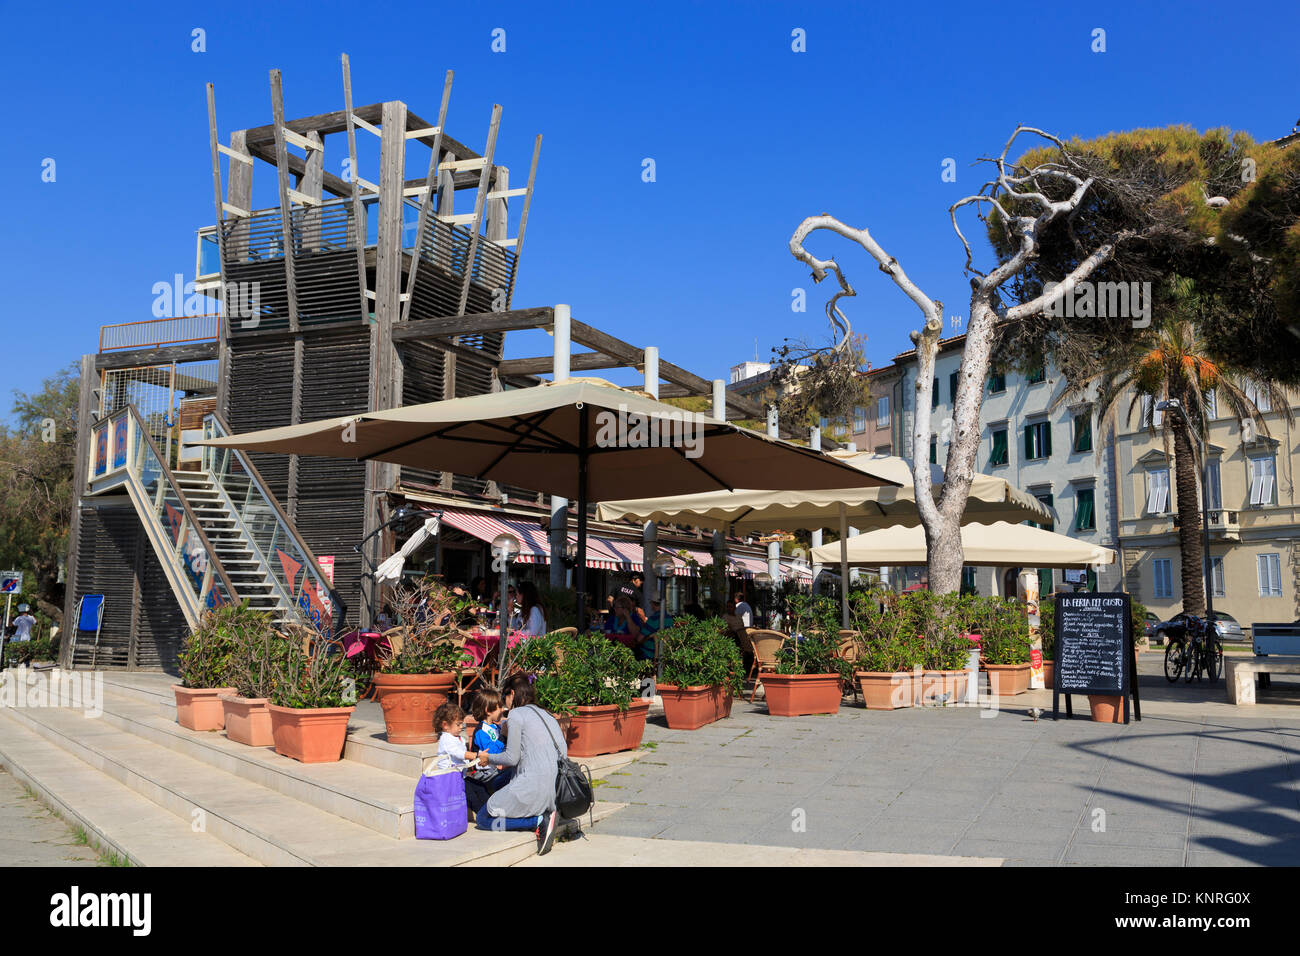 Terrazza Mascagni, Livorno City, Tuscany, Italy, Europe Stock ...